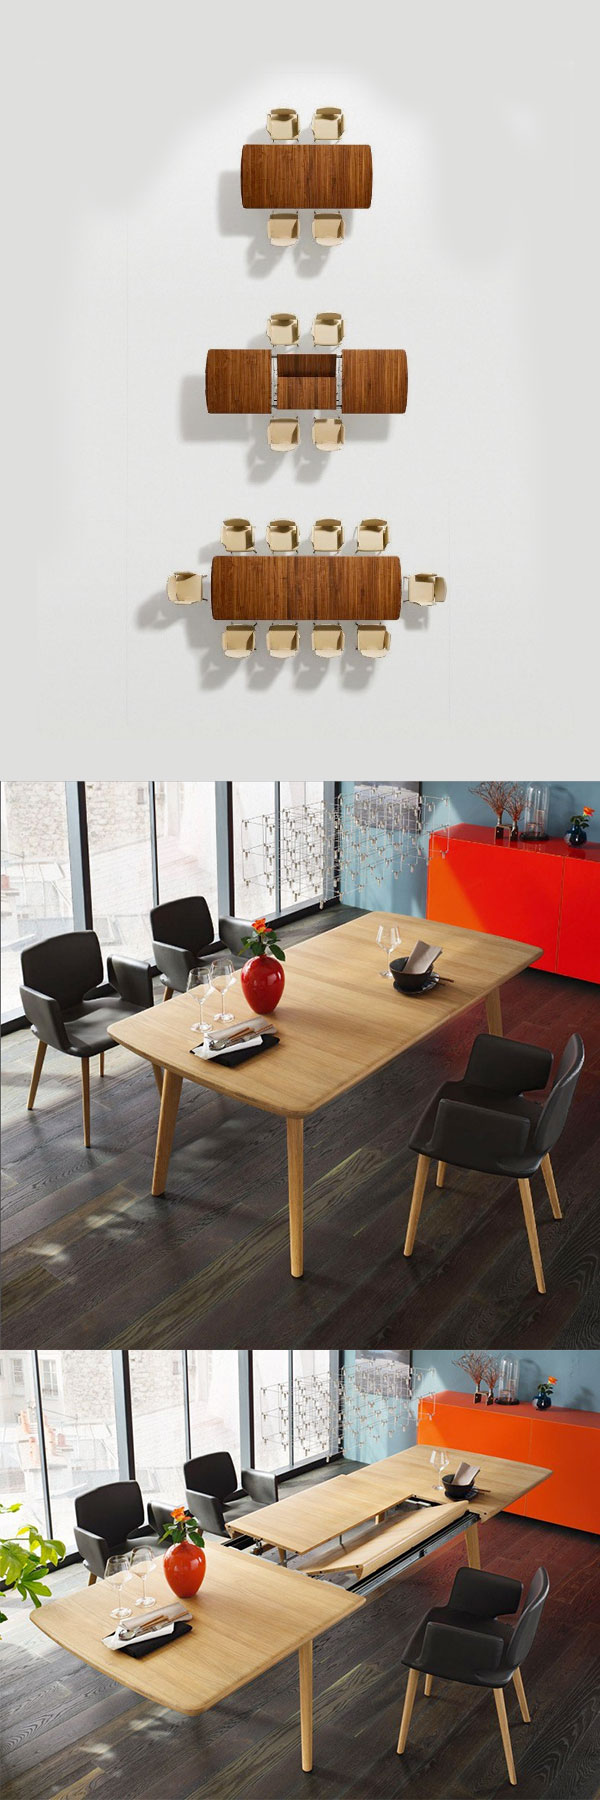 http://cdn.home-designing.com/wp-content/uploads/2014/05/6-Expandable-dining-table-with-chairs.jpg